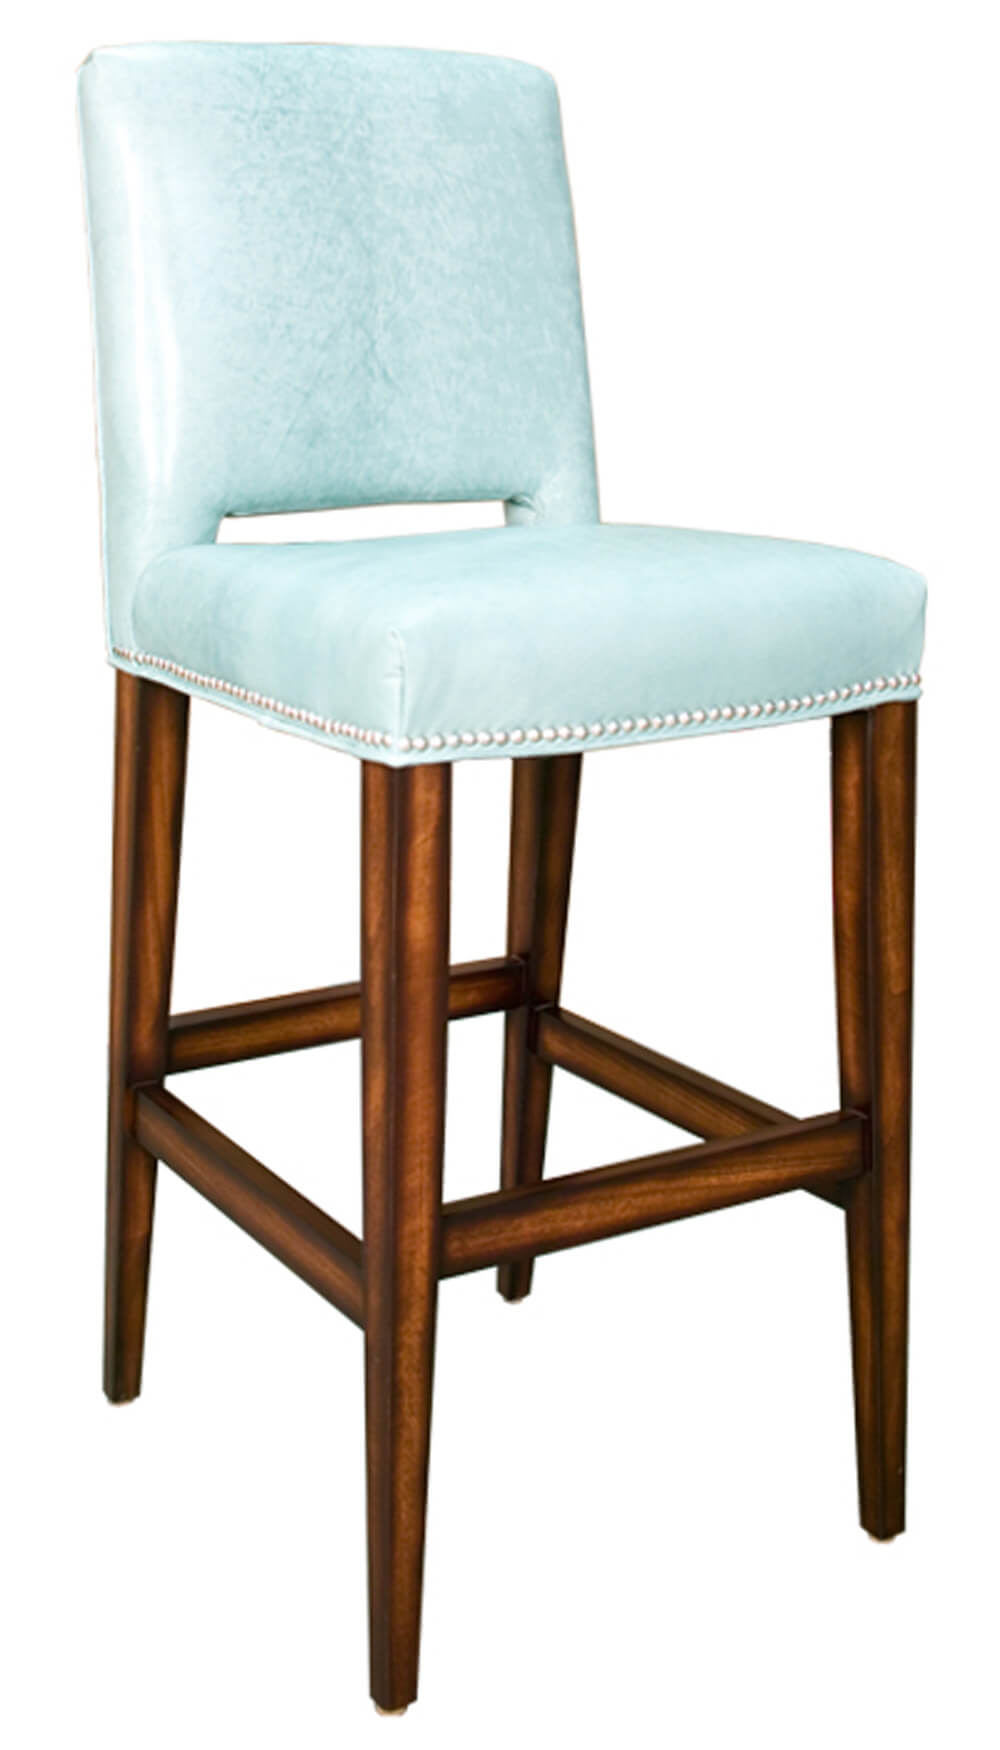 California house s135 bar stool - Beautify your bar area with unique barstools ...